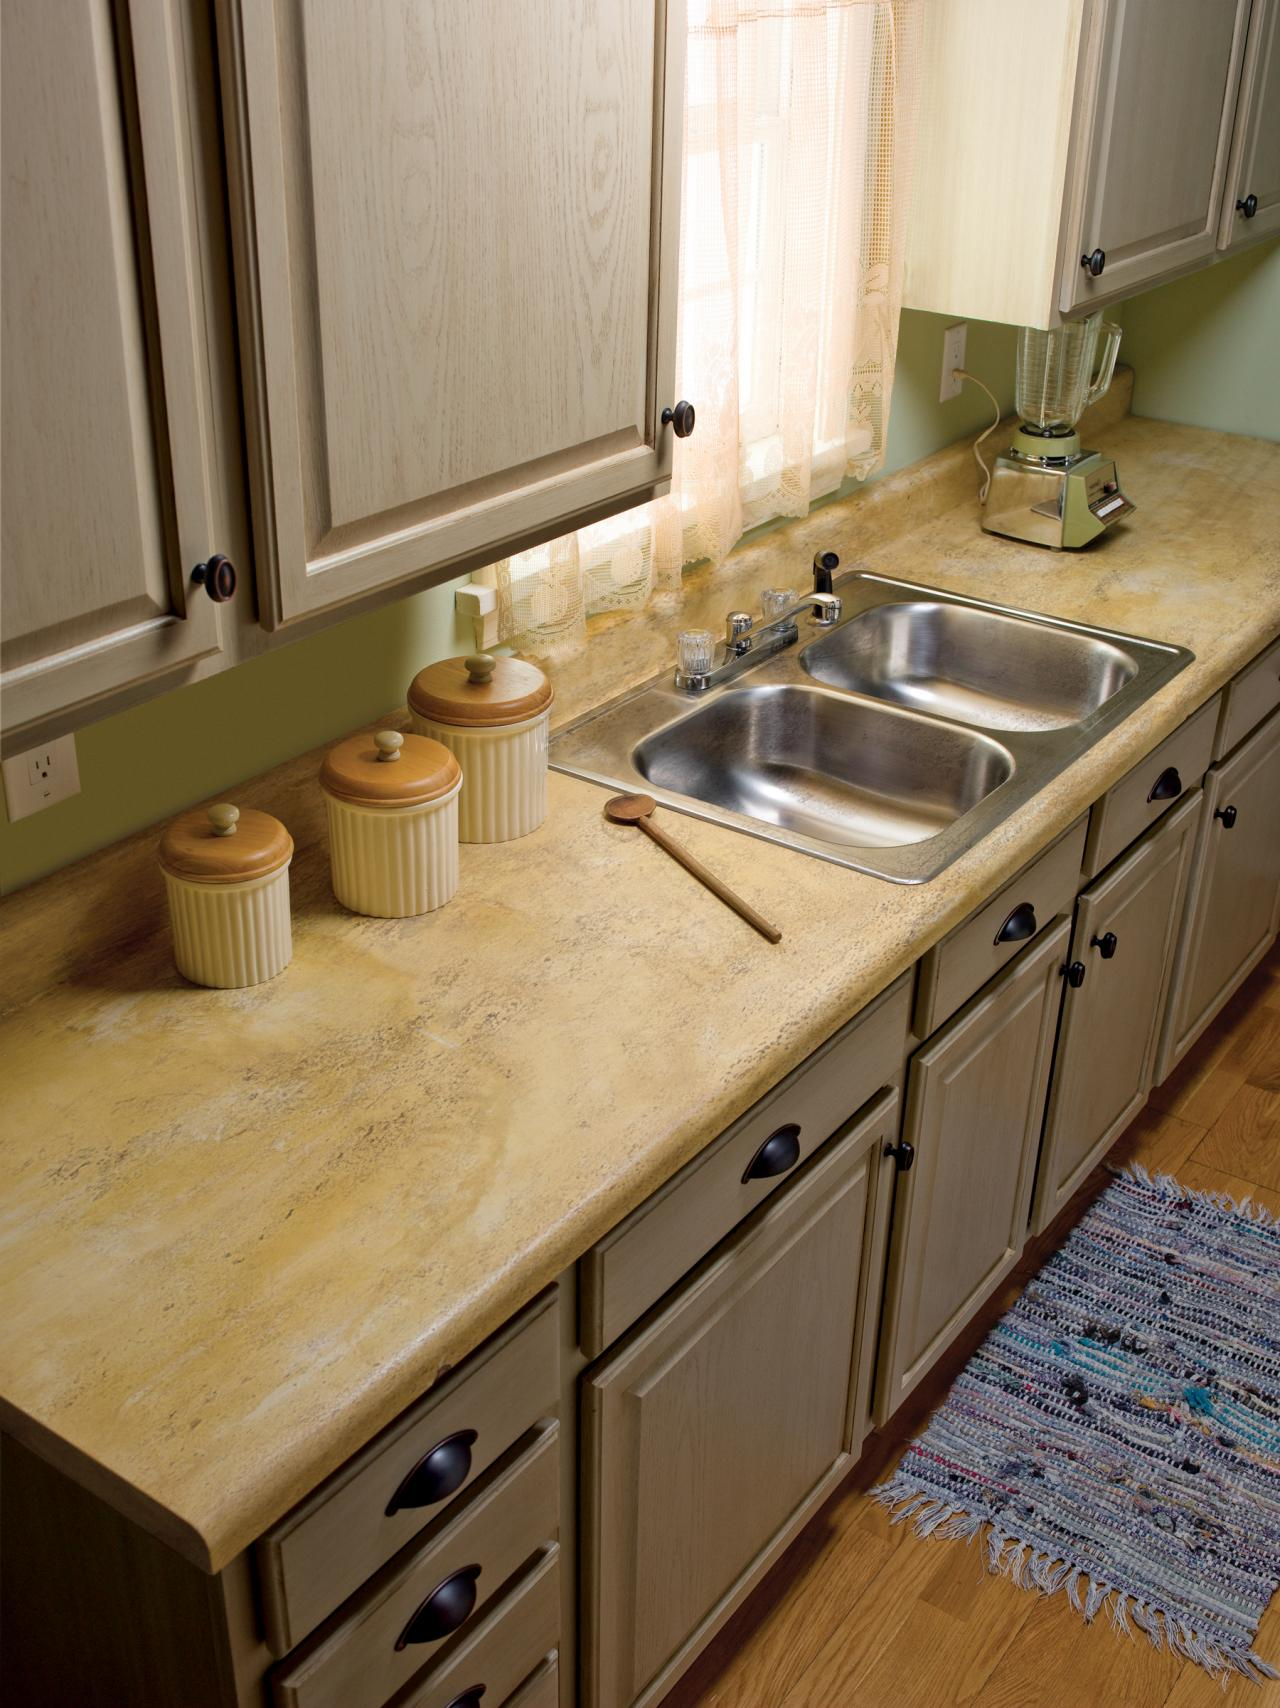 one piece kitchen sink and countertop. stainless steel sink with